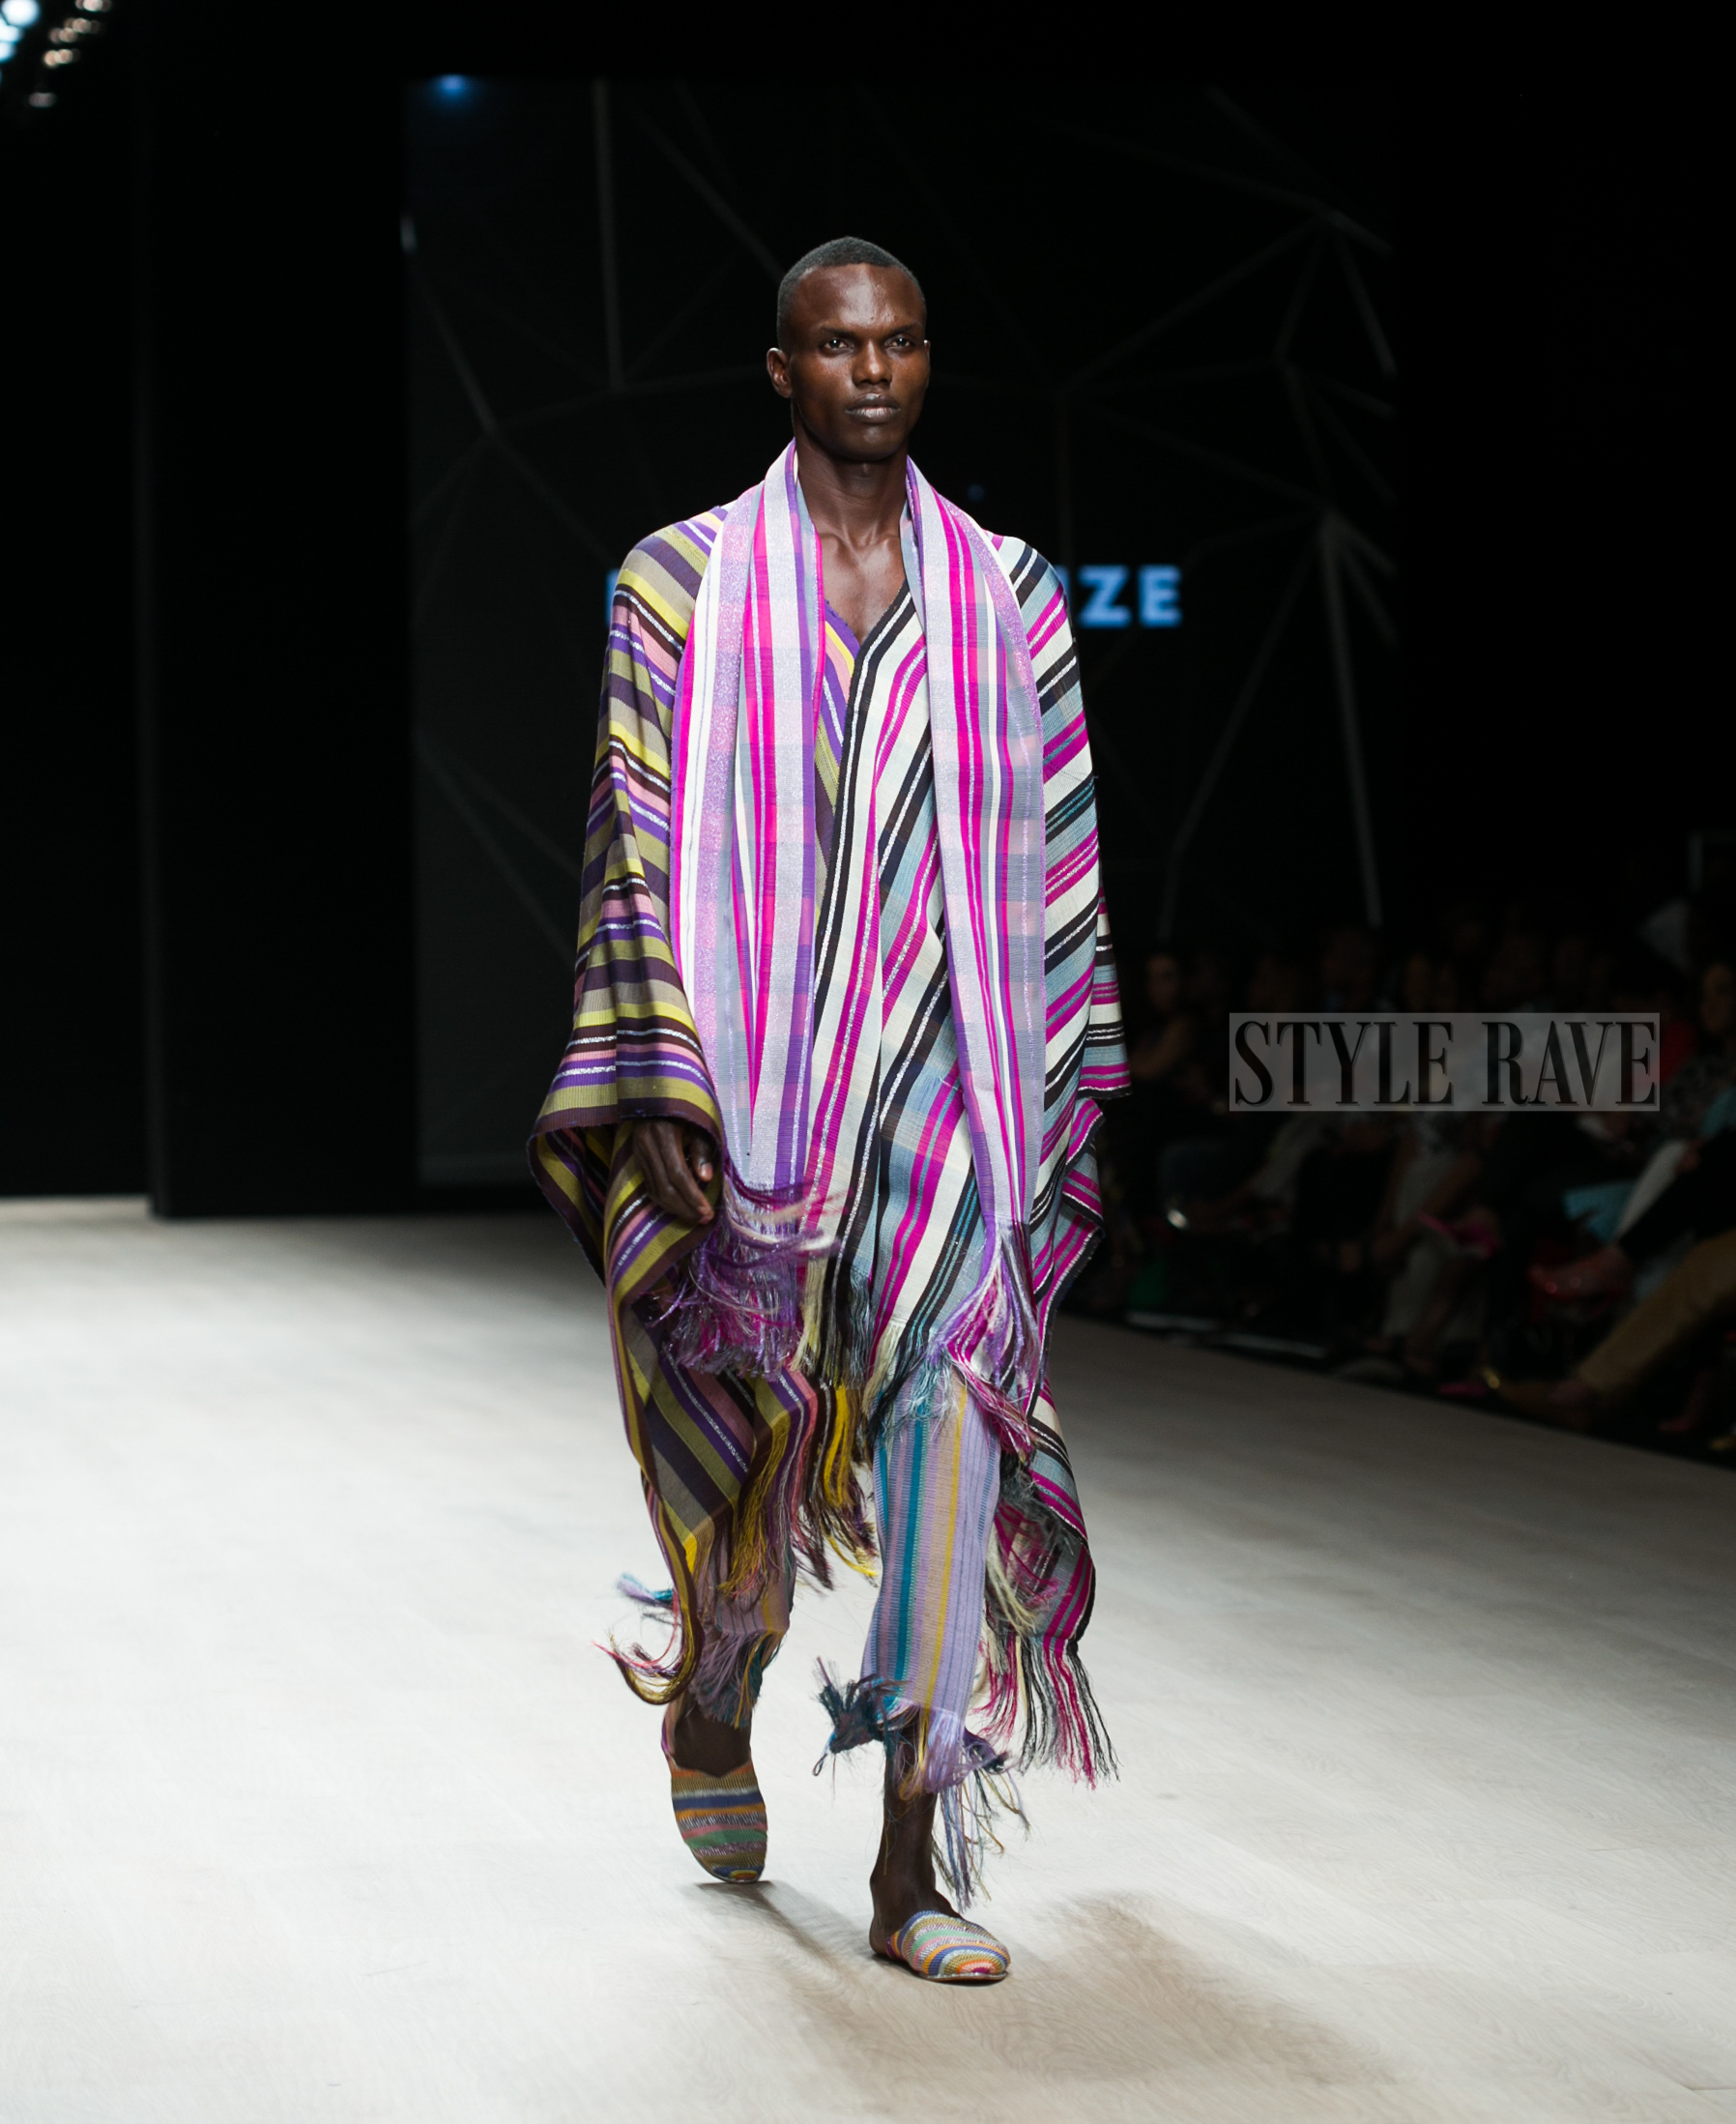 Arise Fashion kenneth Ize